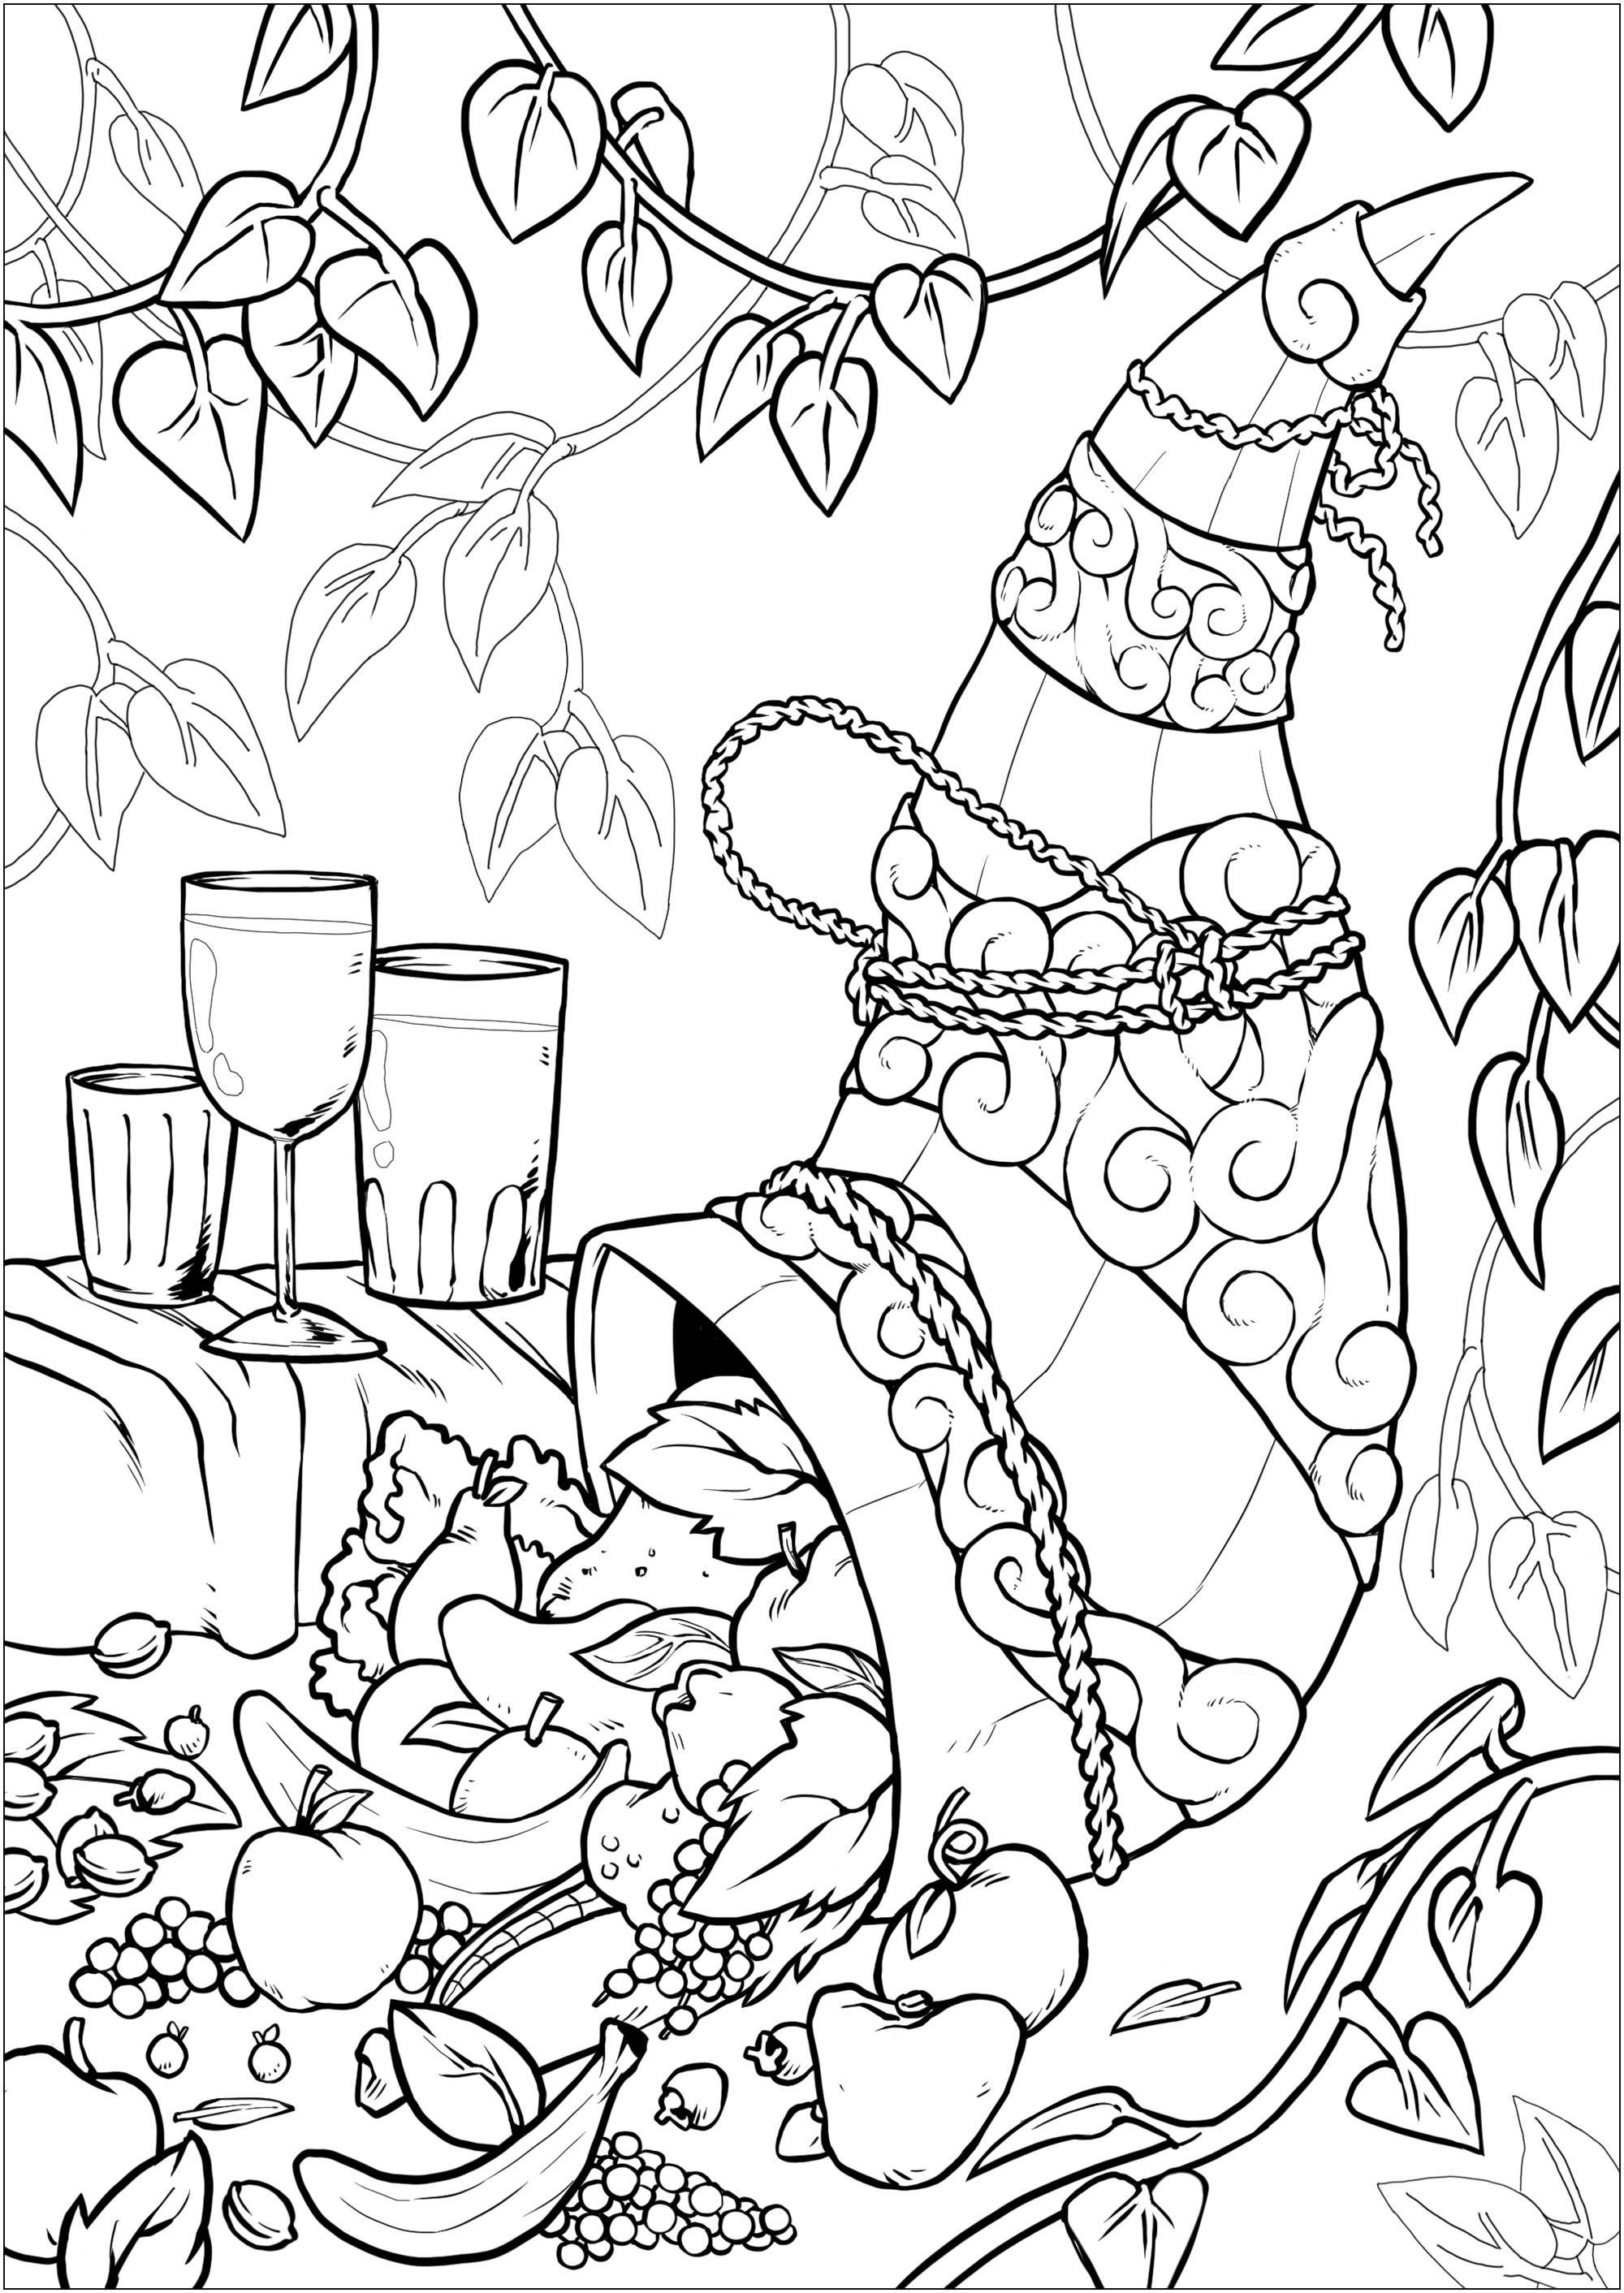 Color this Cornucopia full of fruits, with lot of details